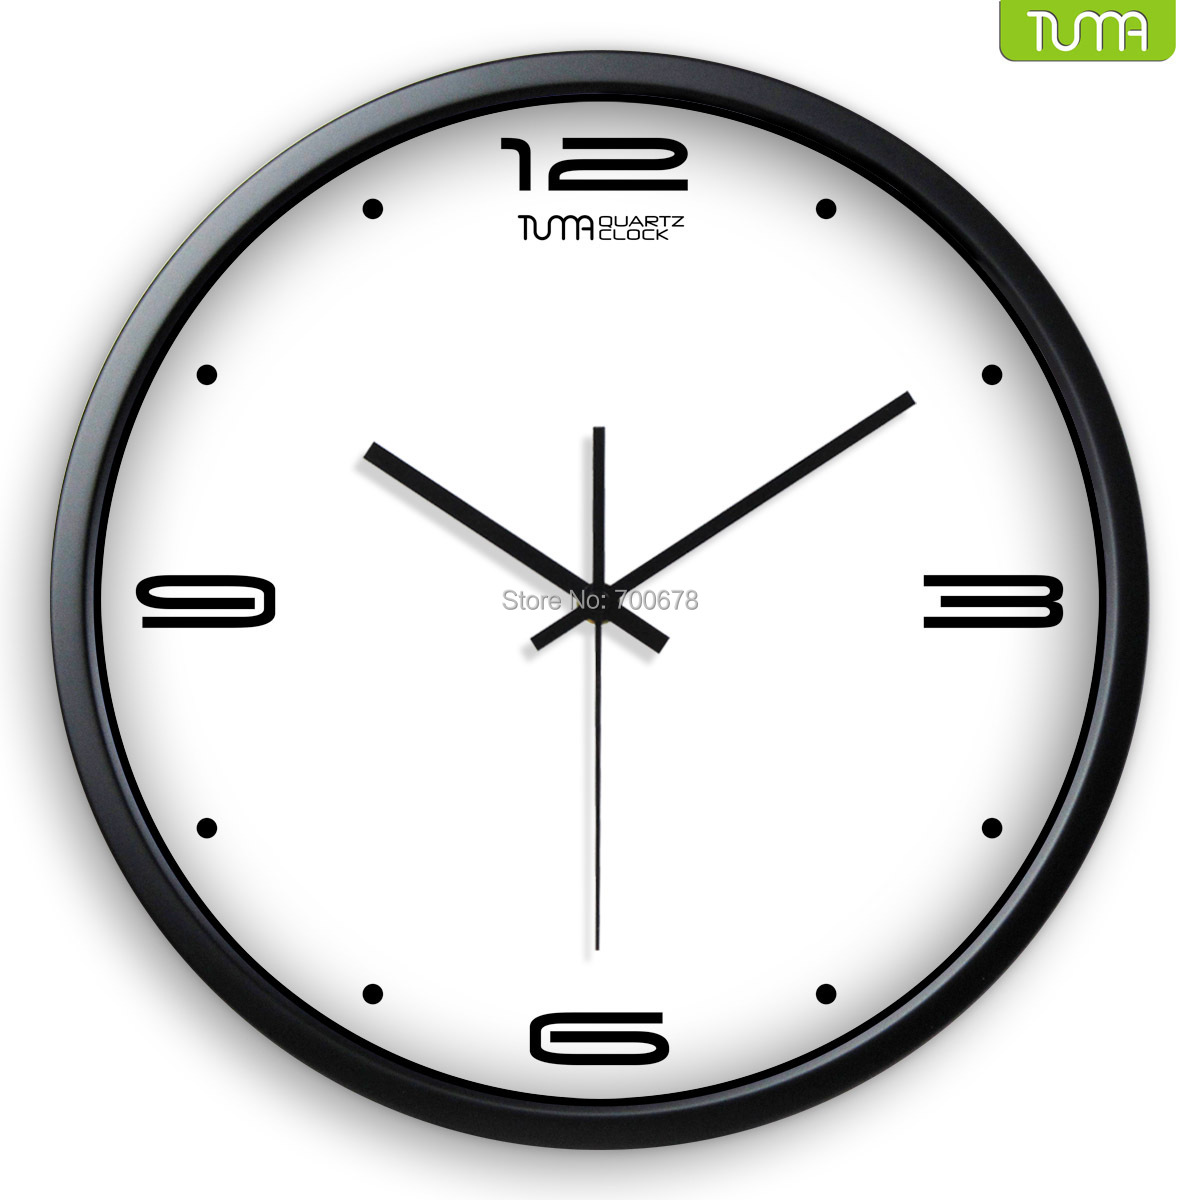 tuma wall clock movement 14 inch living room bedroom clock big wall pocket watch quartz clock. Black Bedroom Furniture Sets. Home Design Ideas